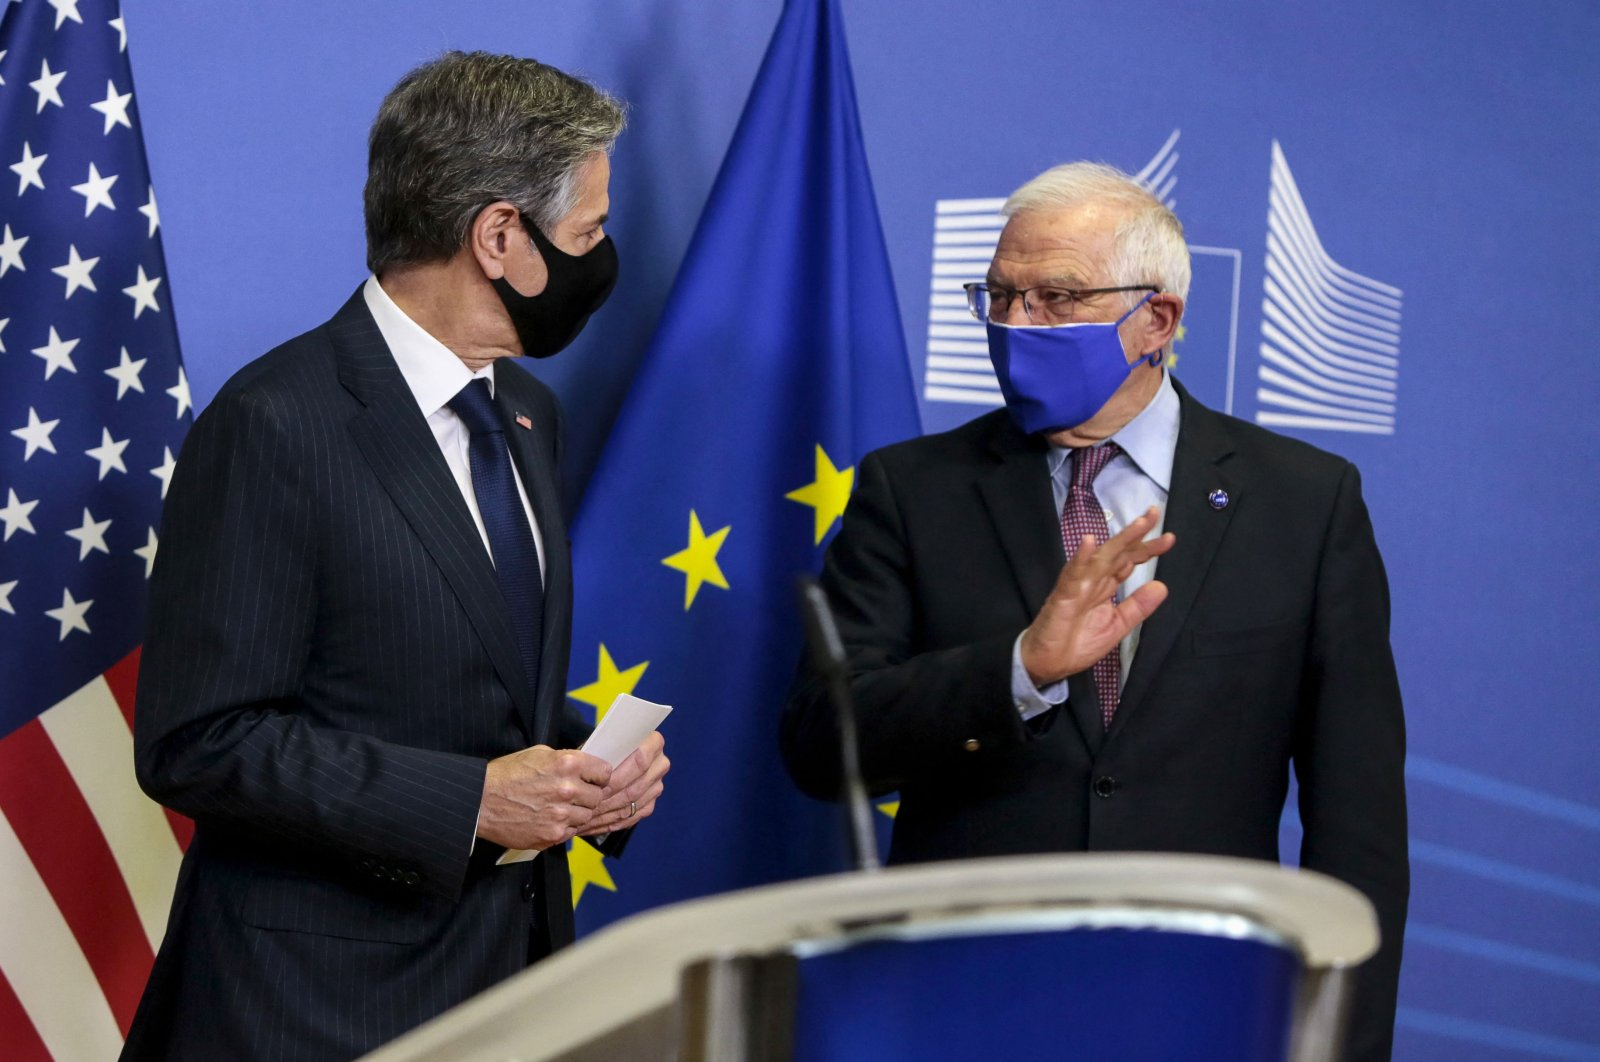 U.S. Secretary of State Antony Blinken (L) and European High Representative of the Union for Foreign Affairs Josep Borrell give a press conference ahead of their meeting at the EU headquarters in Brussels, Belgium, March 24, 2021. (AFP)